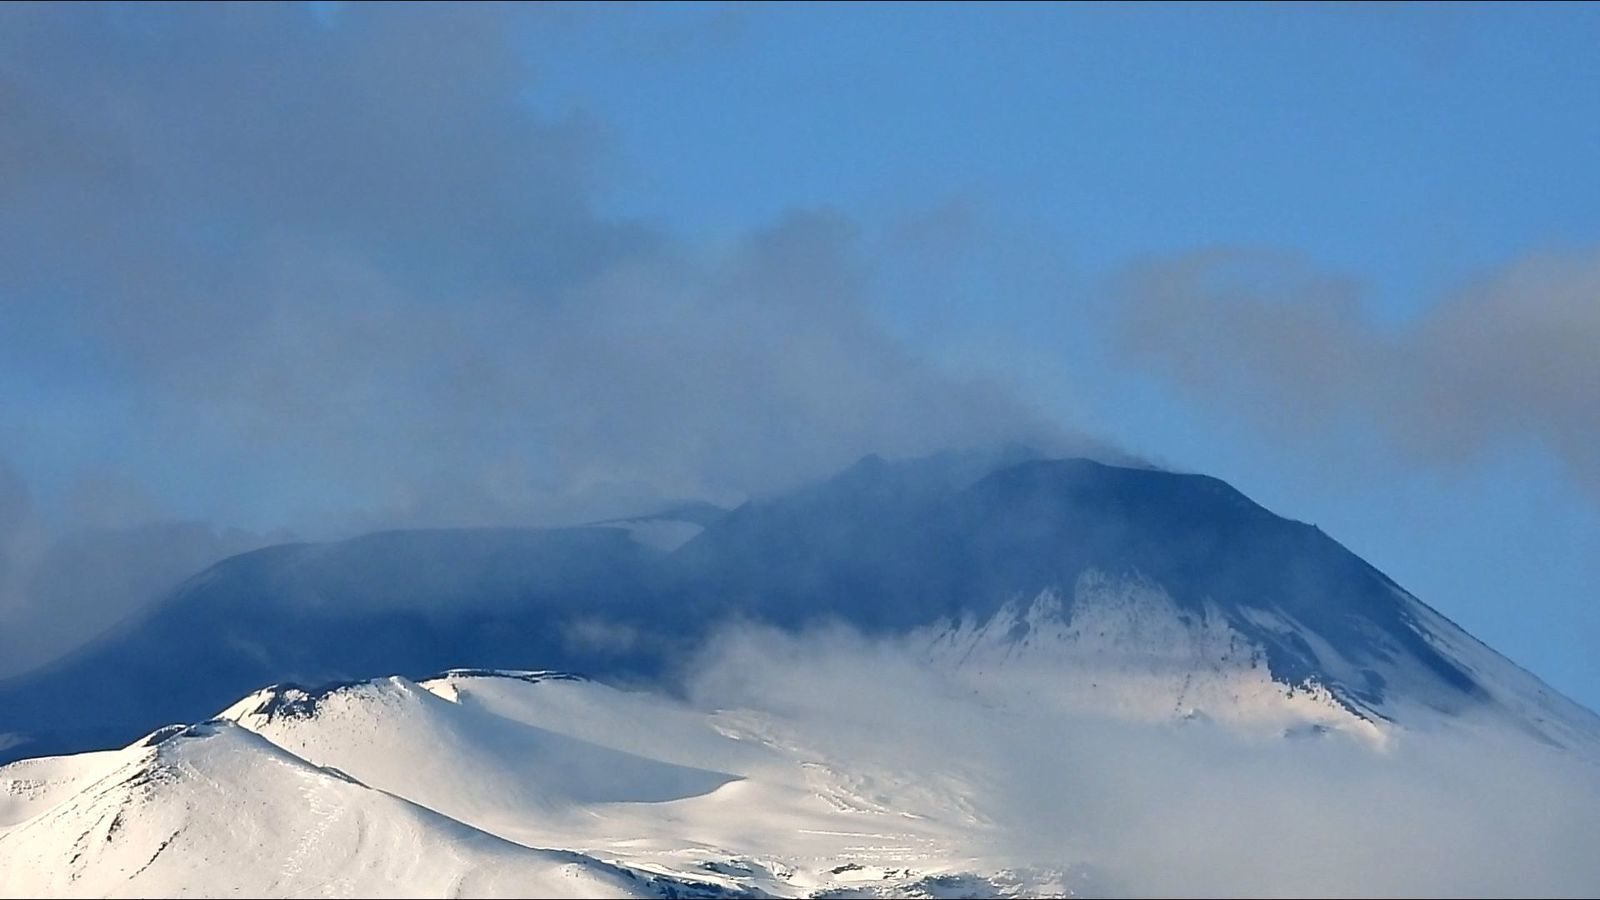 Etna SEC - on 21.12.2020 in the afternoon (lava flows) - photo Boris Behncke